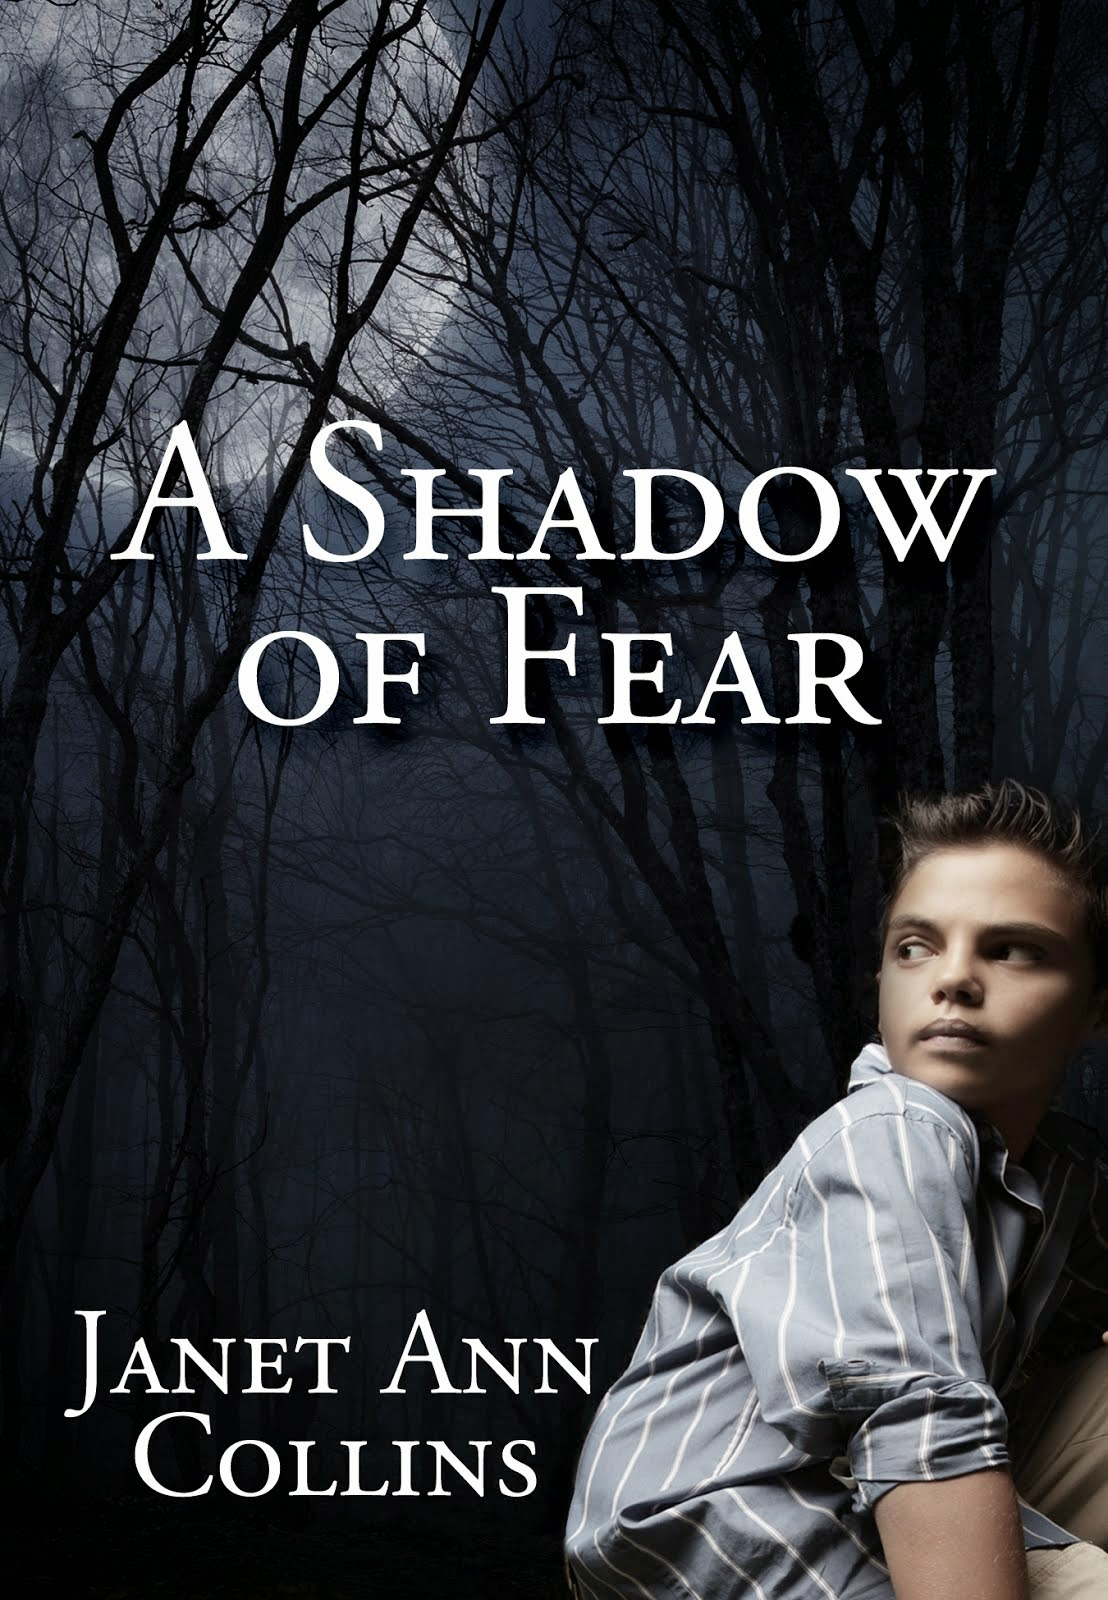 A Shadow of Fear